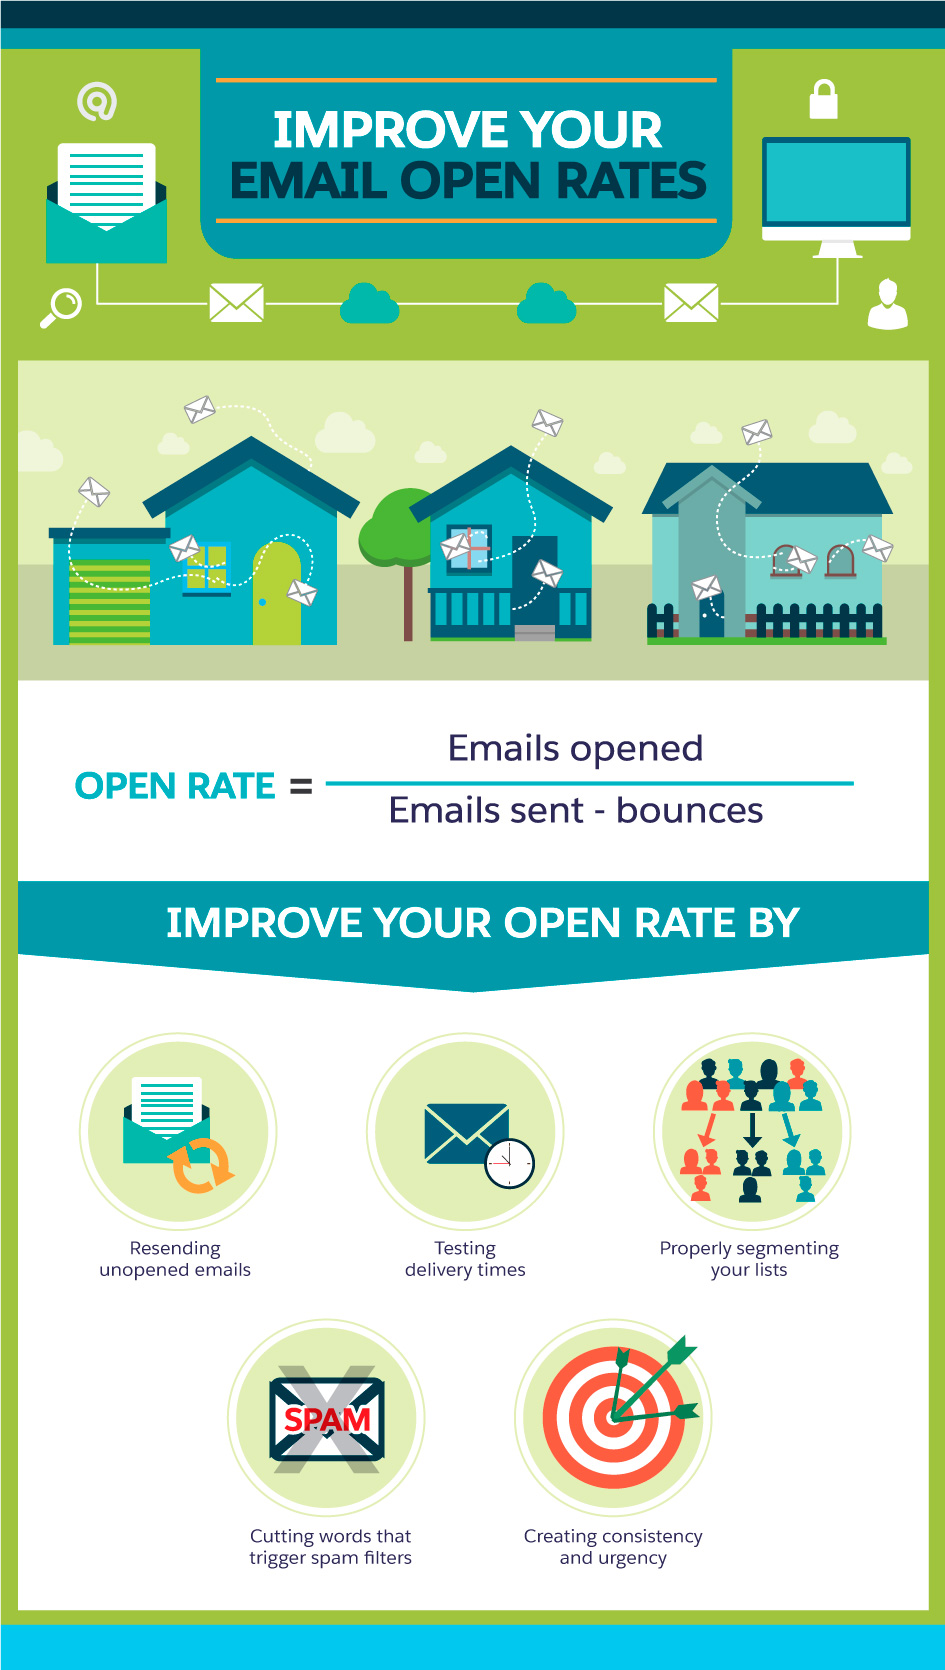 13 Email Marketing Tips to Increase Open Rates, Click-Throughs, and ...